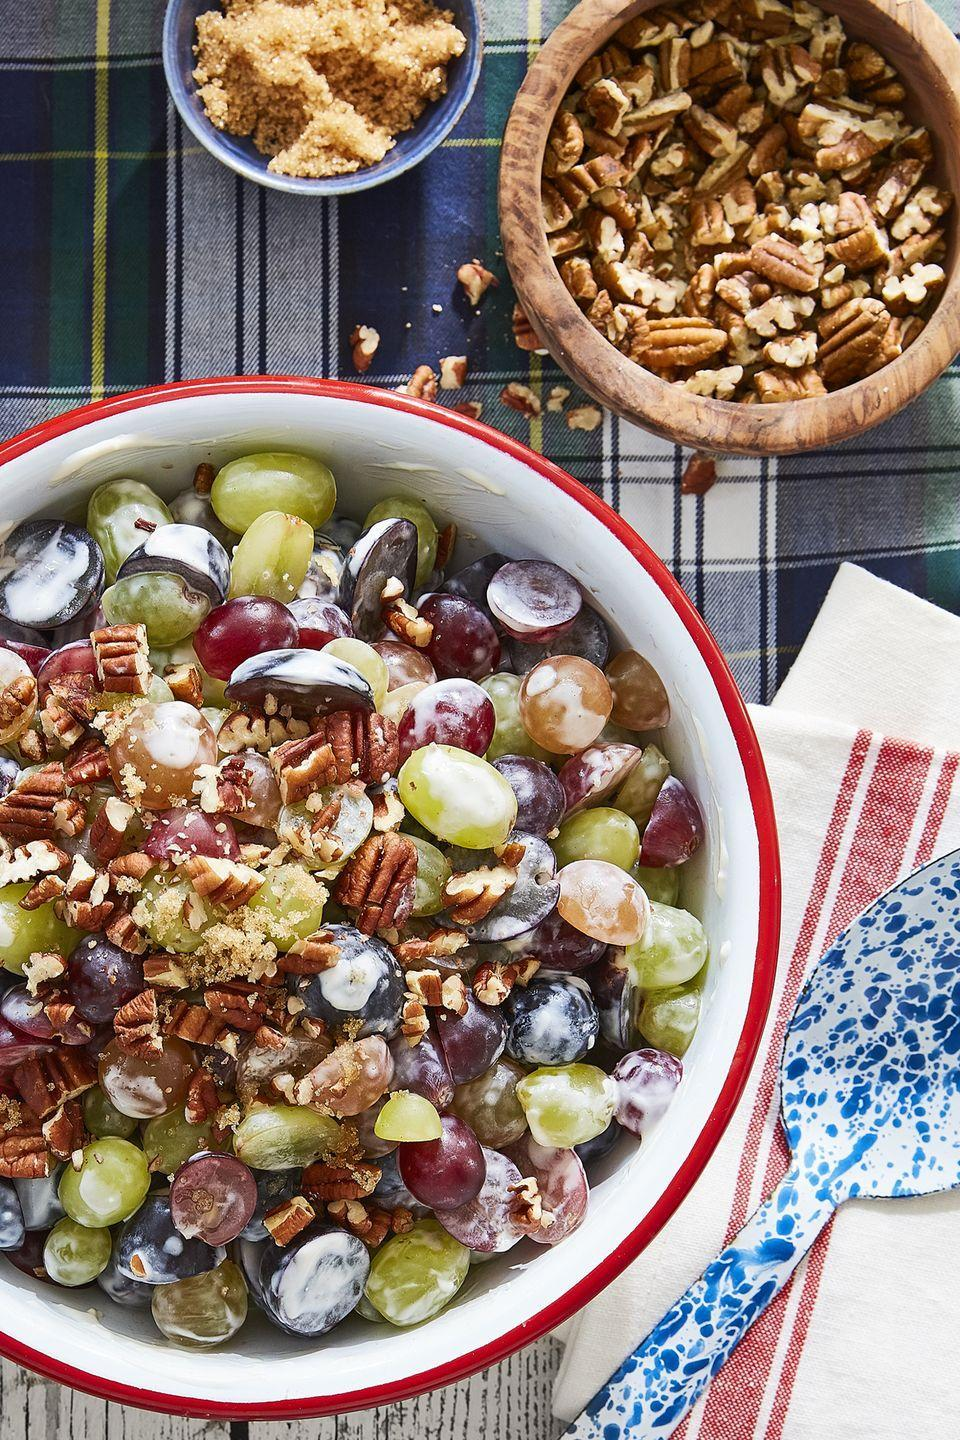 "<p>Brown sugar and toasted pecans give this fruity salad some extra flavor and crunch. </p><p><strong><a href=""https://www.countryliving.com/food-drinks/recipes/a45296/grape-salad-recipe/"" rel=""nofollow noopener"" target=""_blank"" data-ylk=""slk:Get the recipe"" class=""link rapid-noclick-resp"">Get the recipe</a>.</strong></p><p><a class=""link rapid-noclick-resp"" href=""https://www.amazon.com/Premium-Stainless-Steel-Mixing-Brushed/dp/B01HTYH8YA?tag=syn-yahoo-20&ascsubtag=%5Bartid%7C10050.g.4710%5Bsrc%7Cyahoo-us"" rel=""nofollow noopener"" target=""_blank"" data-ylk=""slk:SHOP MIXING BOWLS"">SHOP MIXING BOWLS</a><br></p>"